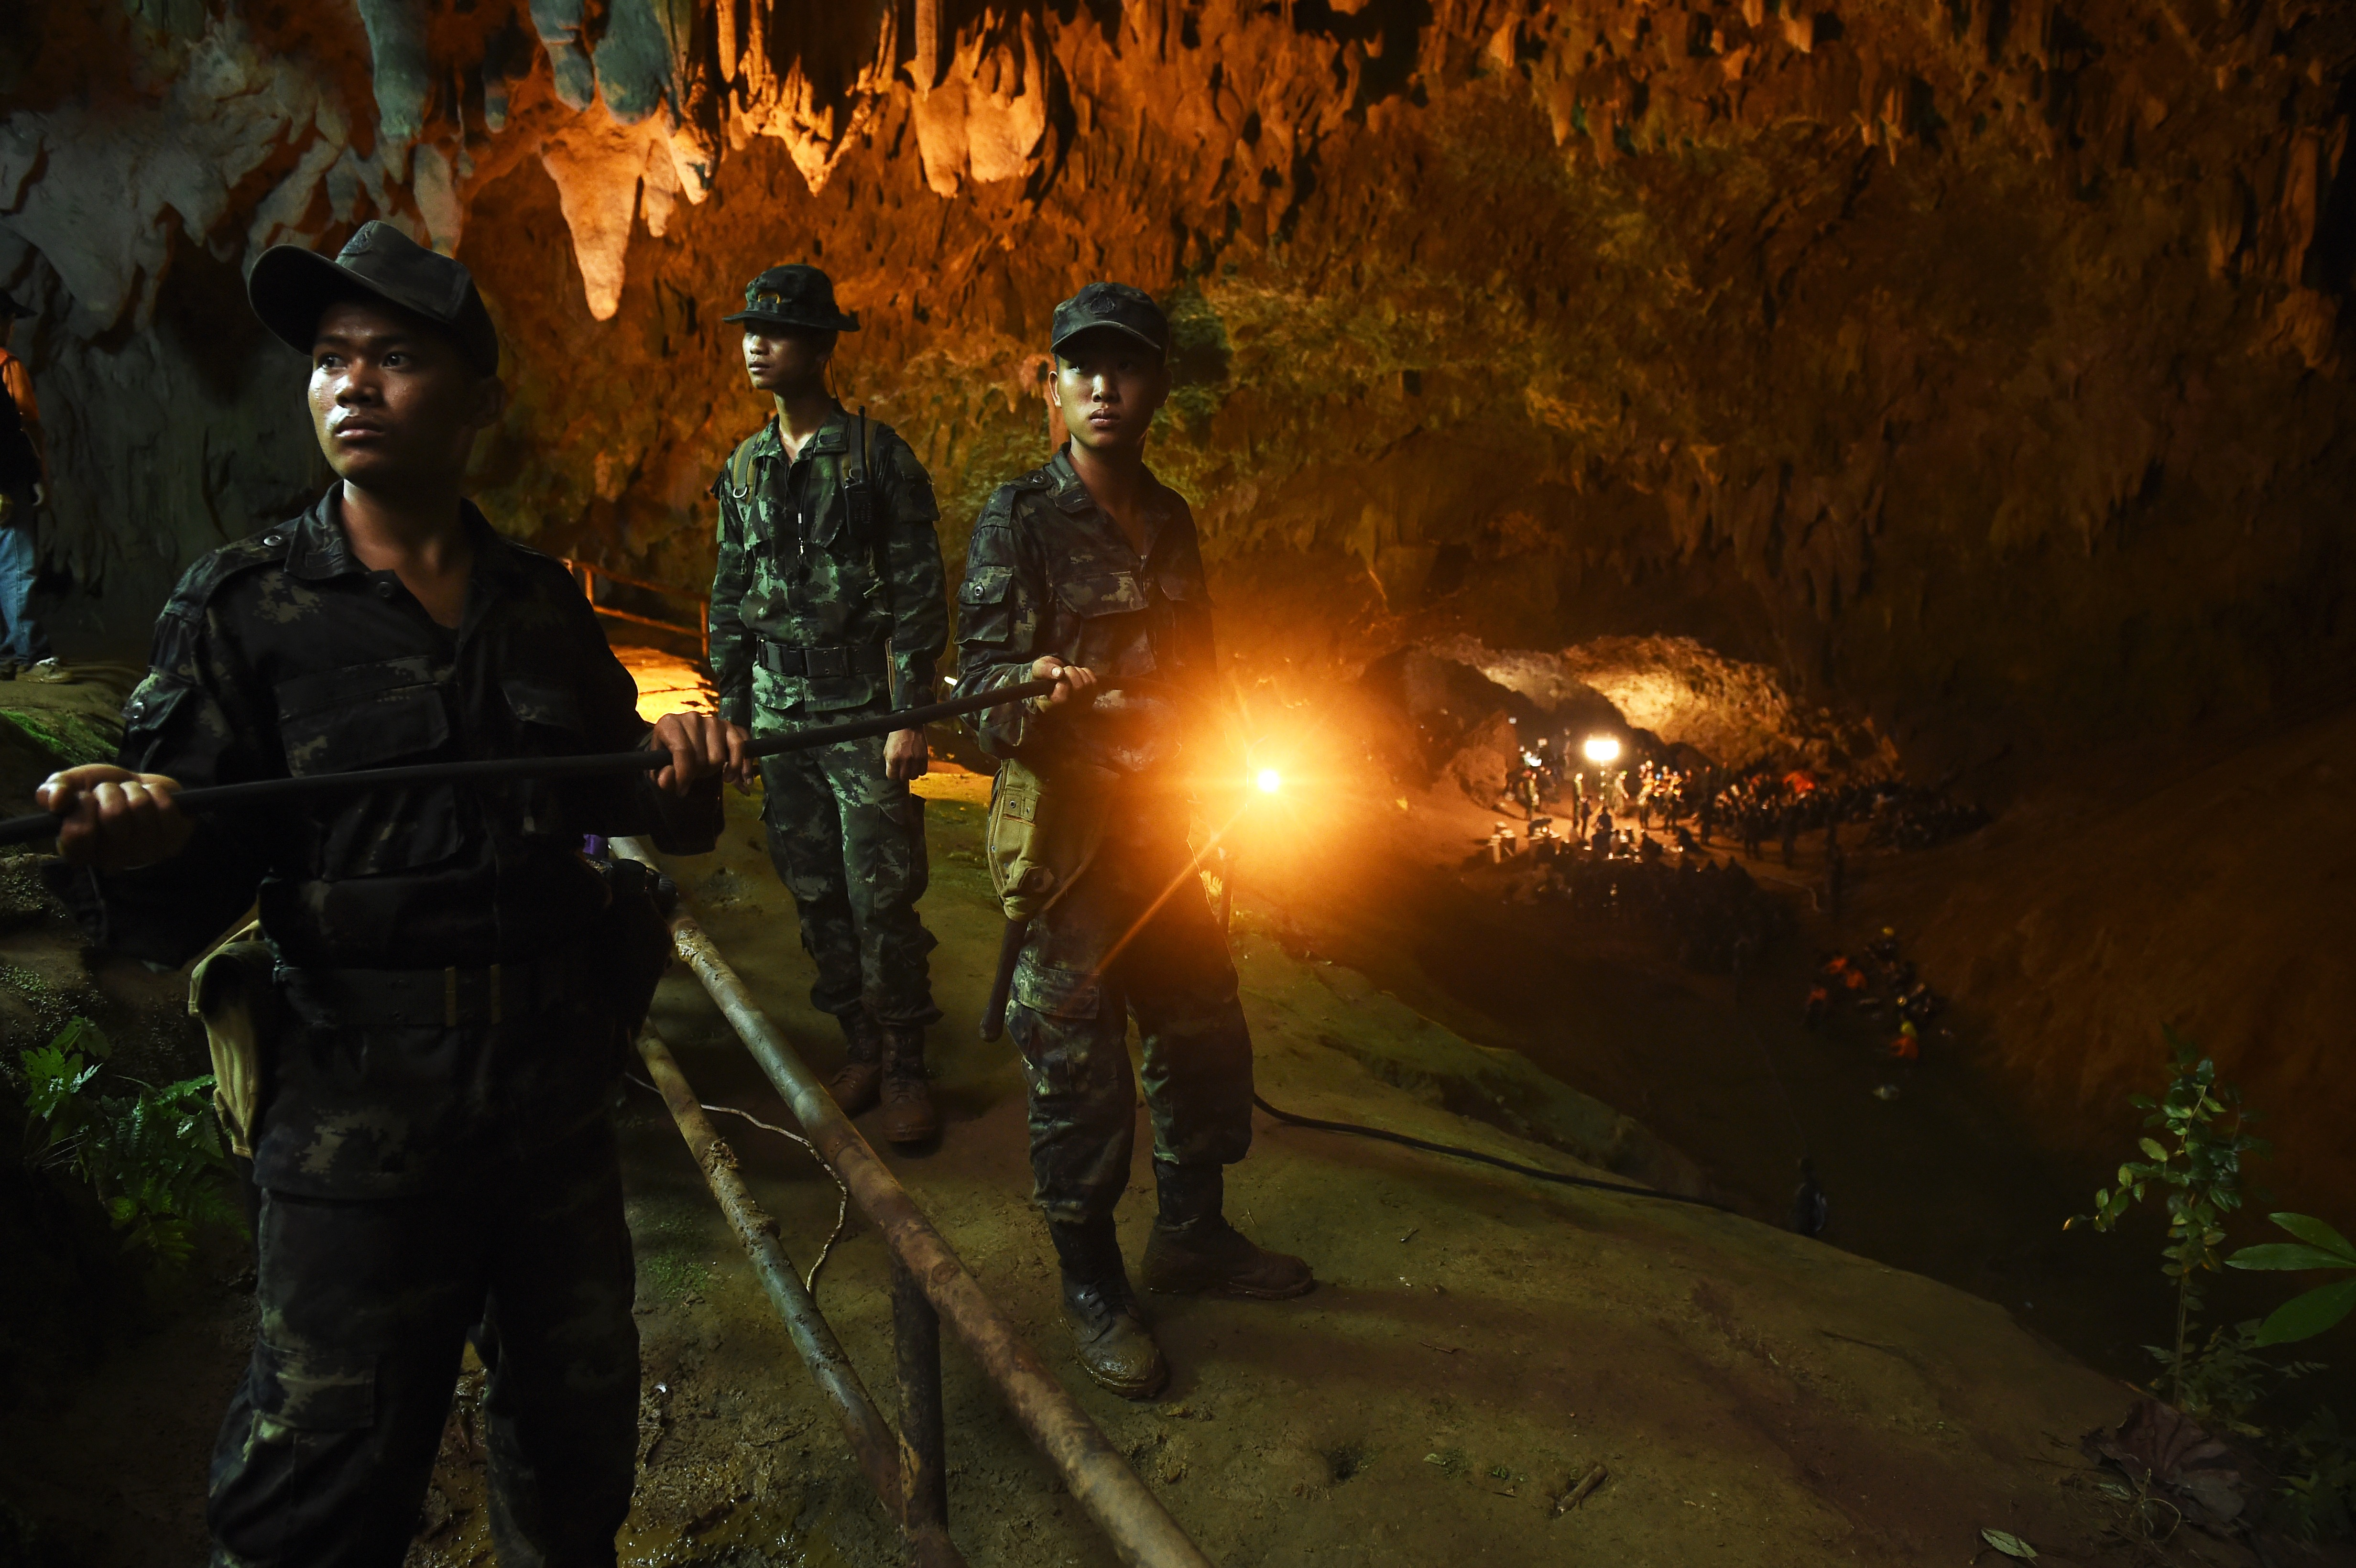 Thai soldiers relay electric cable deep into the Tham Luang cave at the Khun Nam Nang Non Forest Park in Chiang Rai on June 26, 2018.